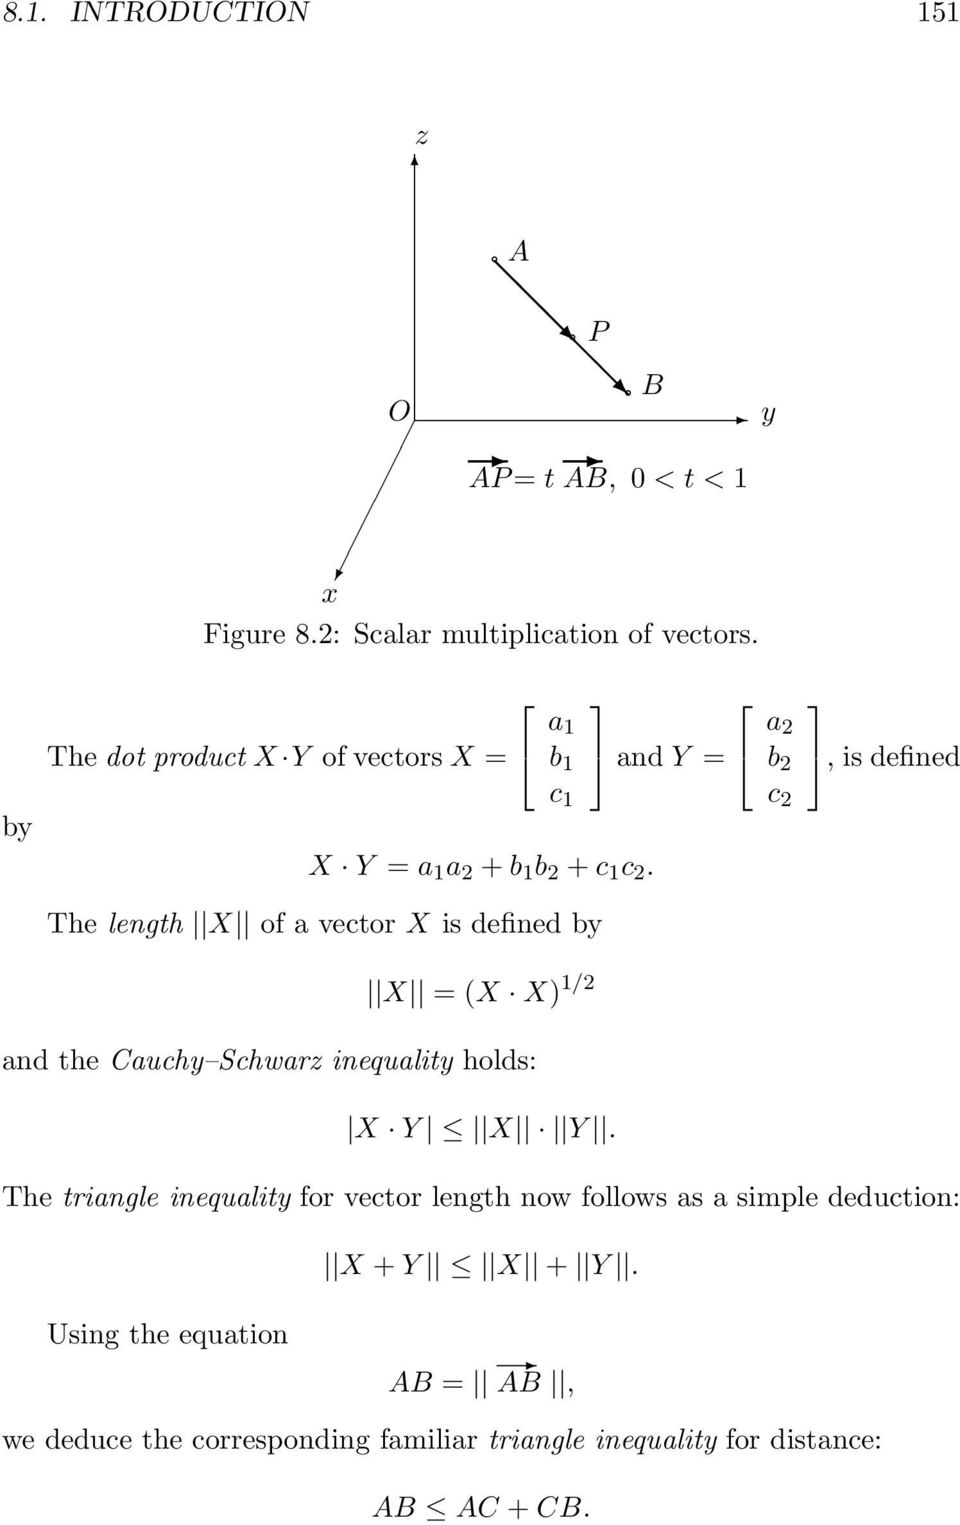 The length X of a vector X is defined by X = (X X) 1/2 and Y = a 2 b 2 c 2, is defined and the Cauchy Schwarz inequality holds: X